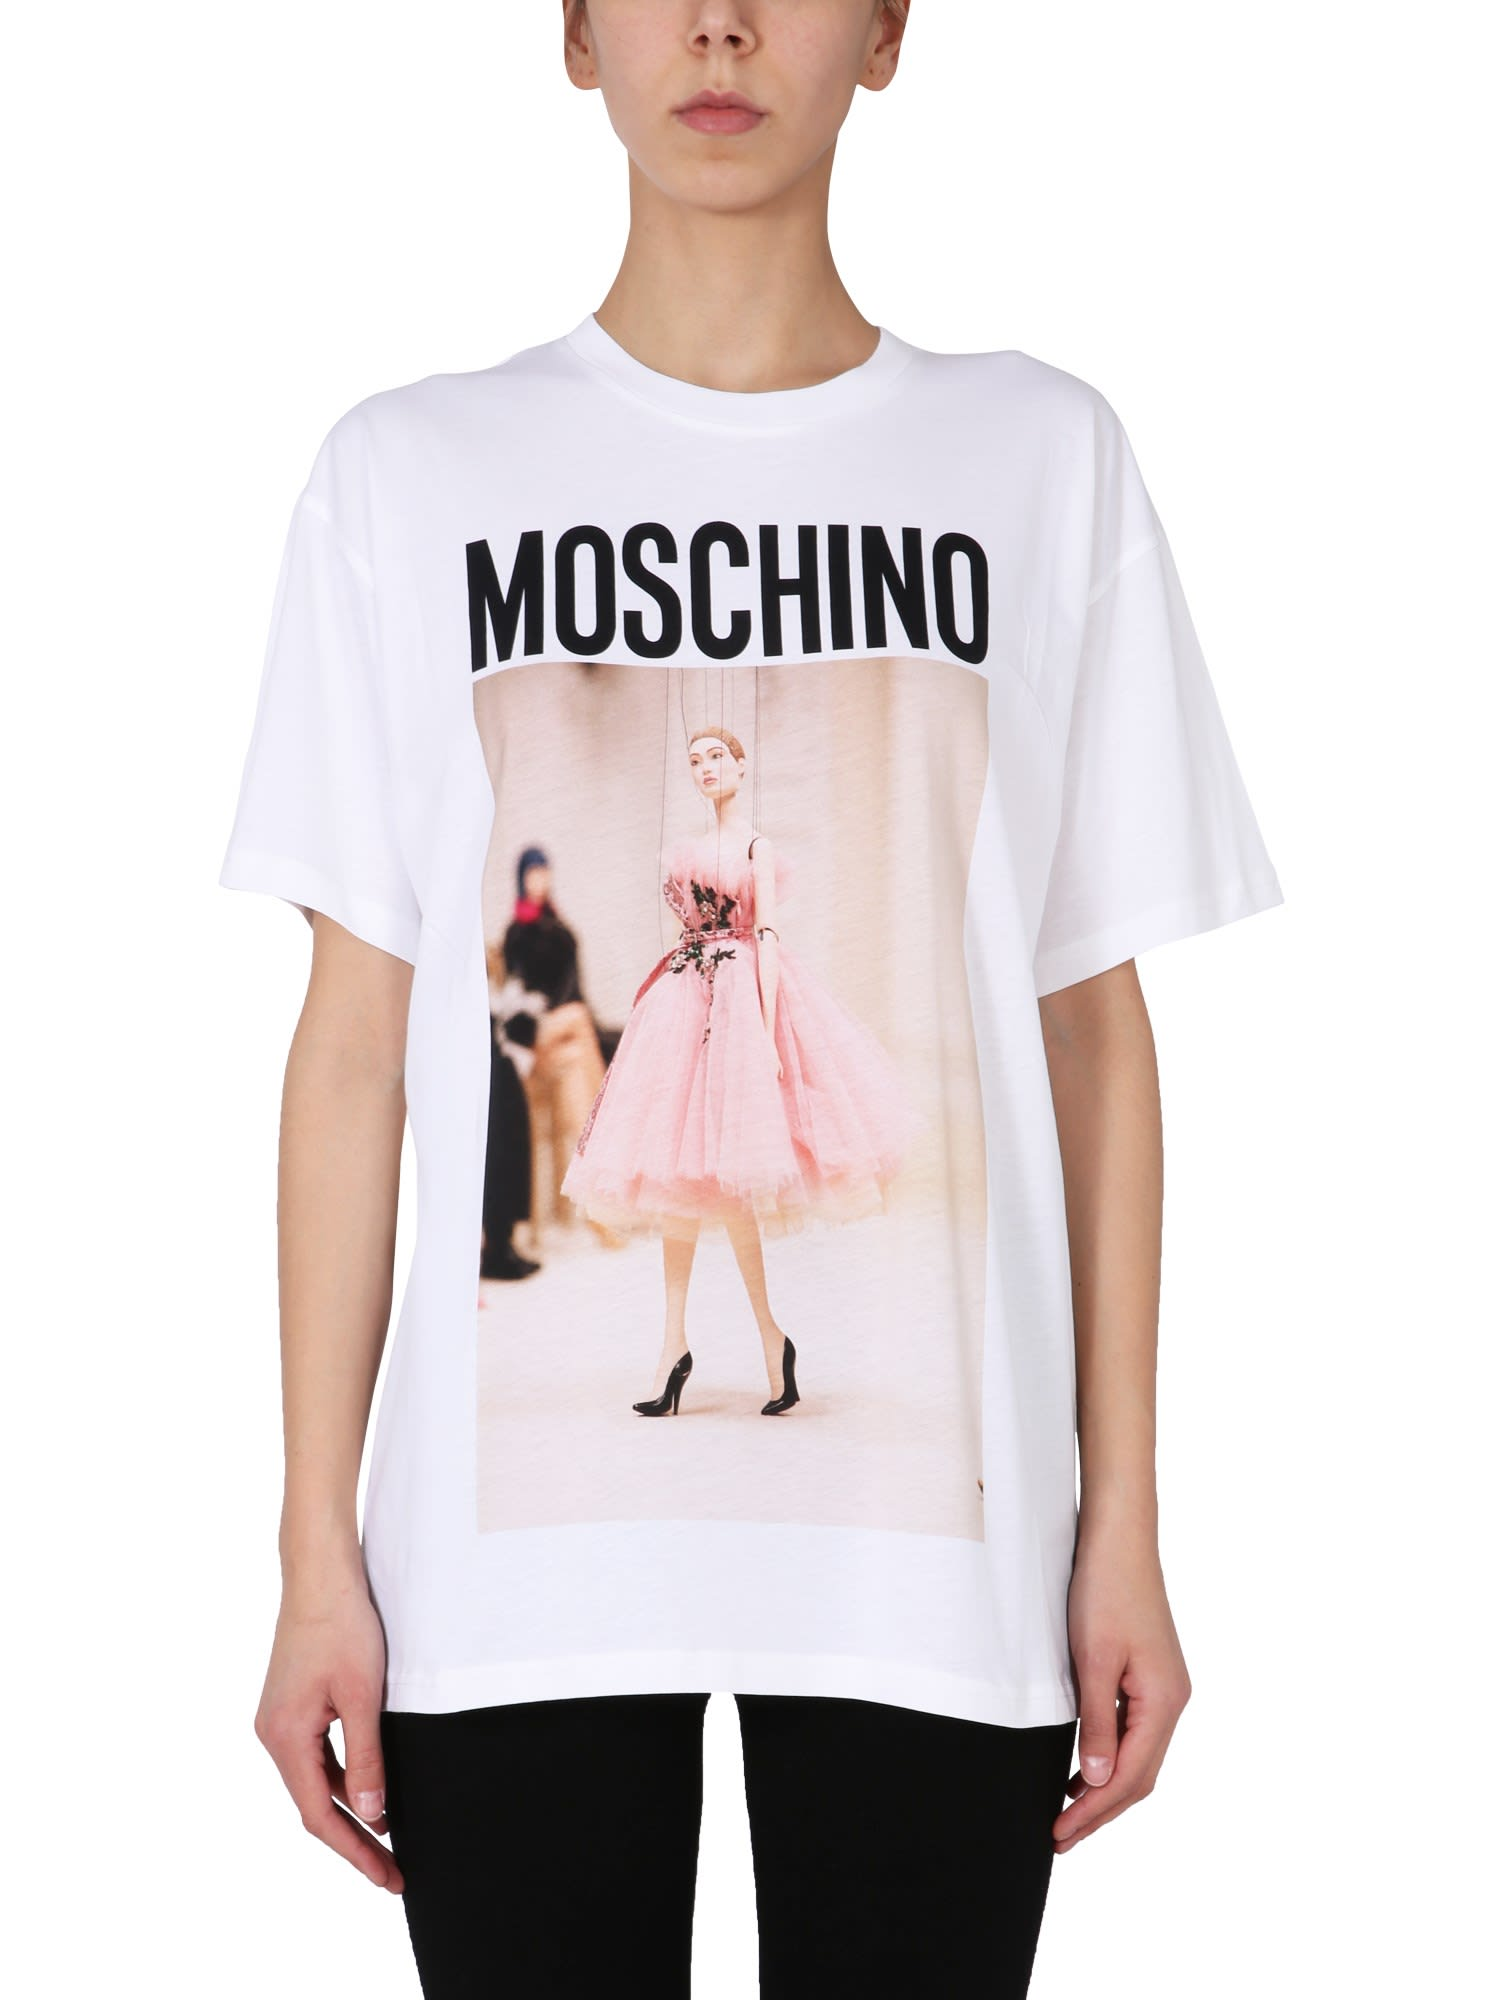 Moschino NO STRINGS ATTACHED T-SHIRT